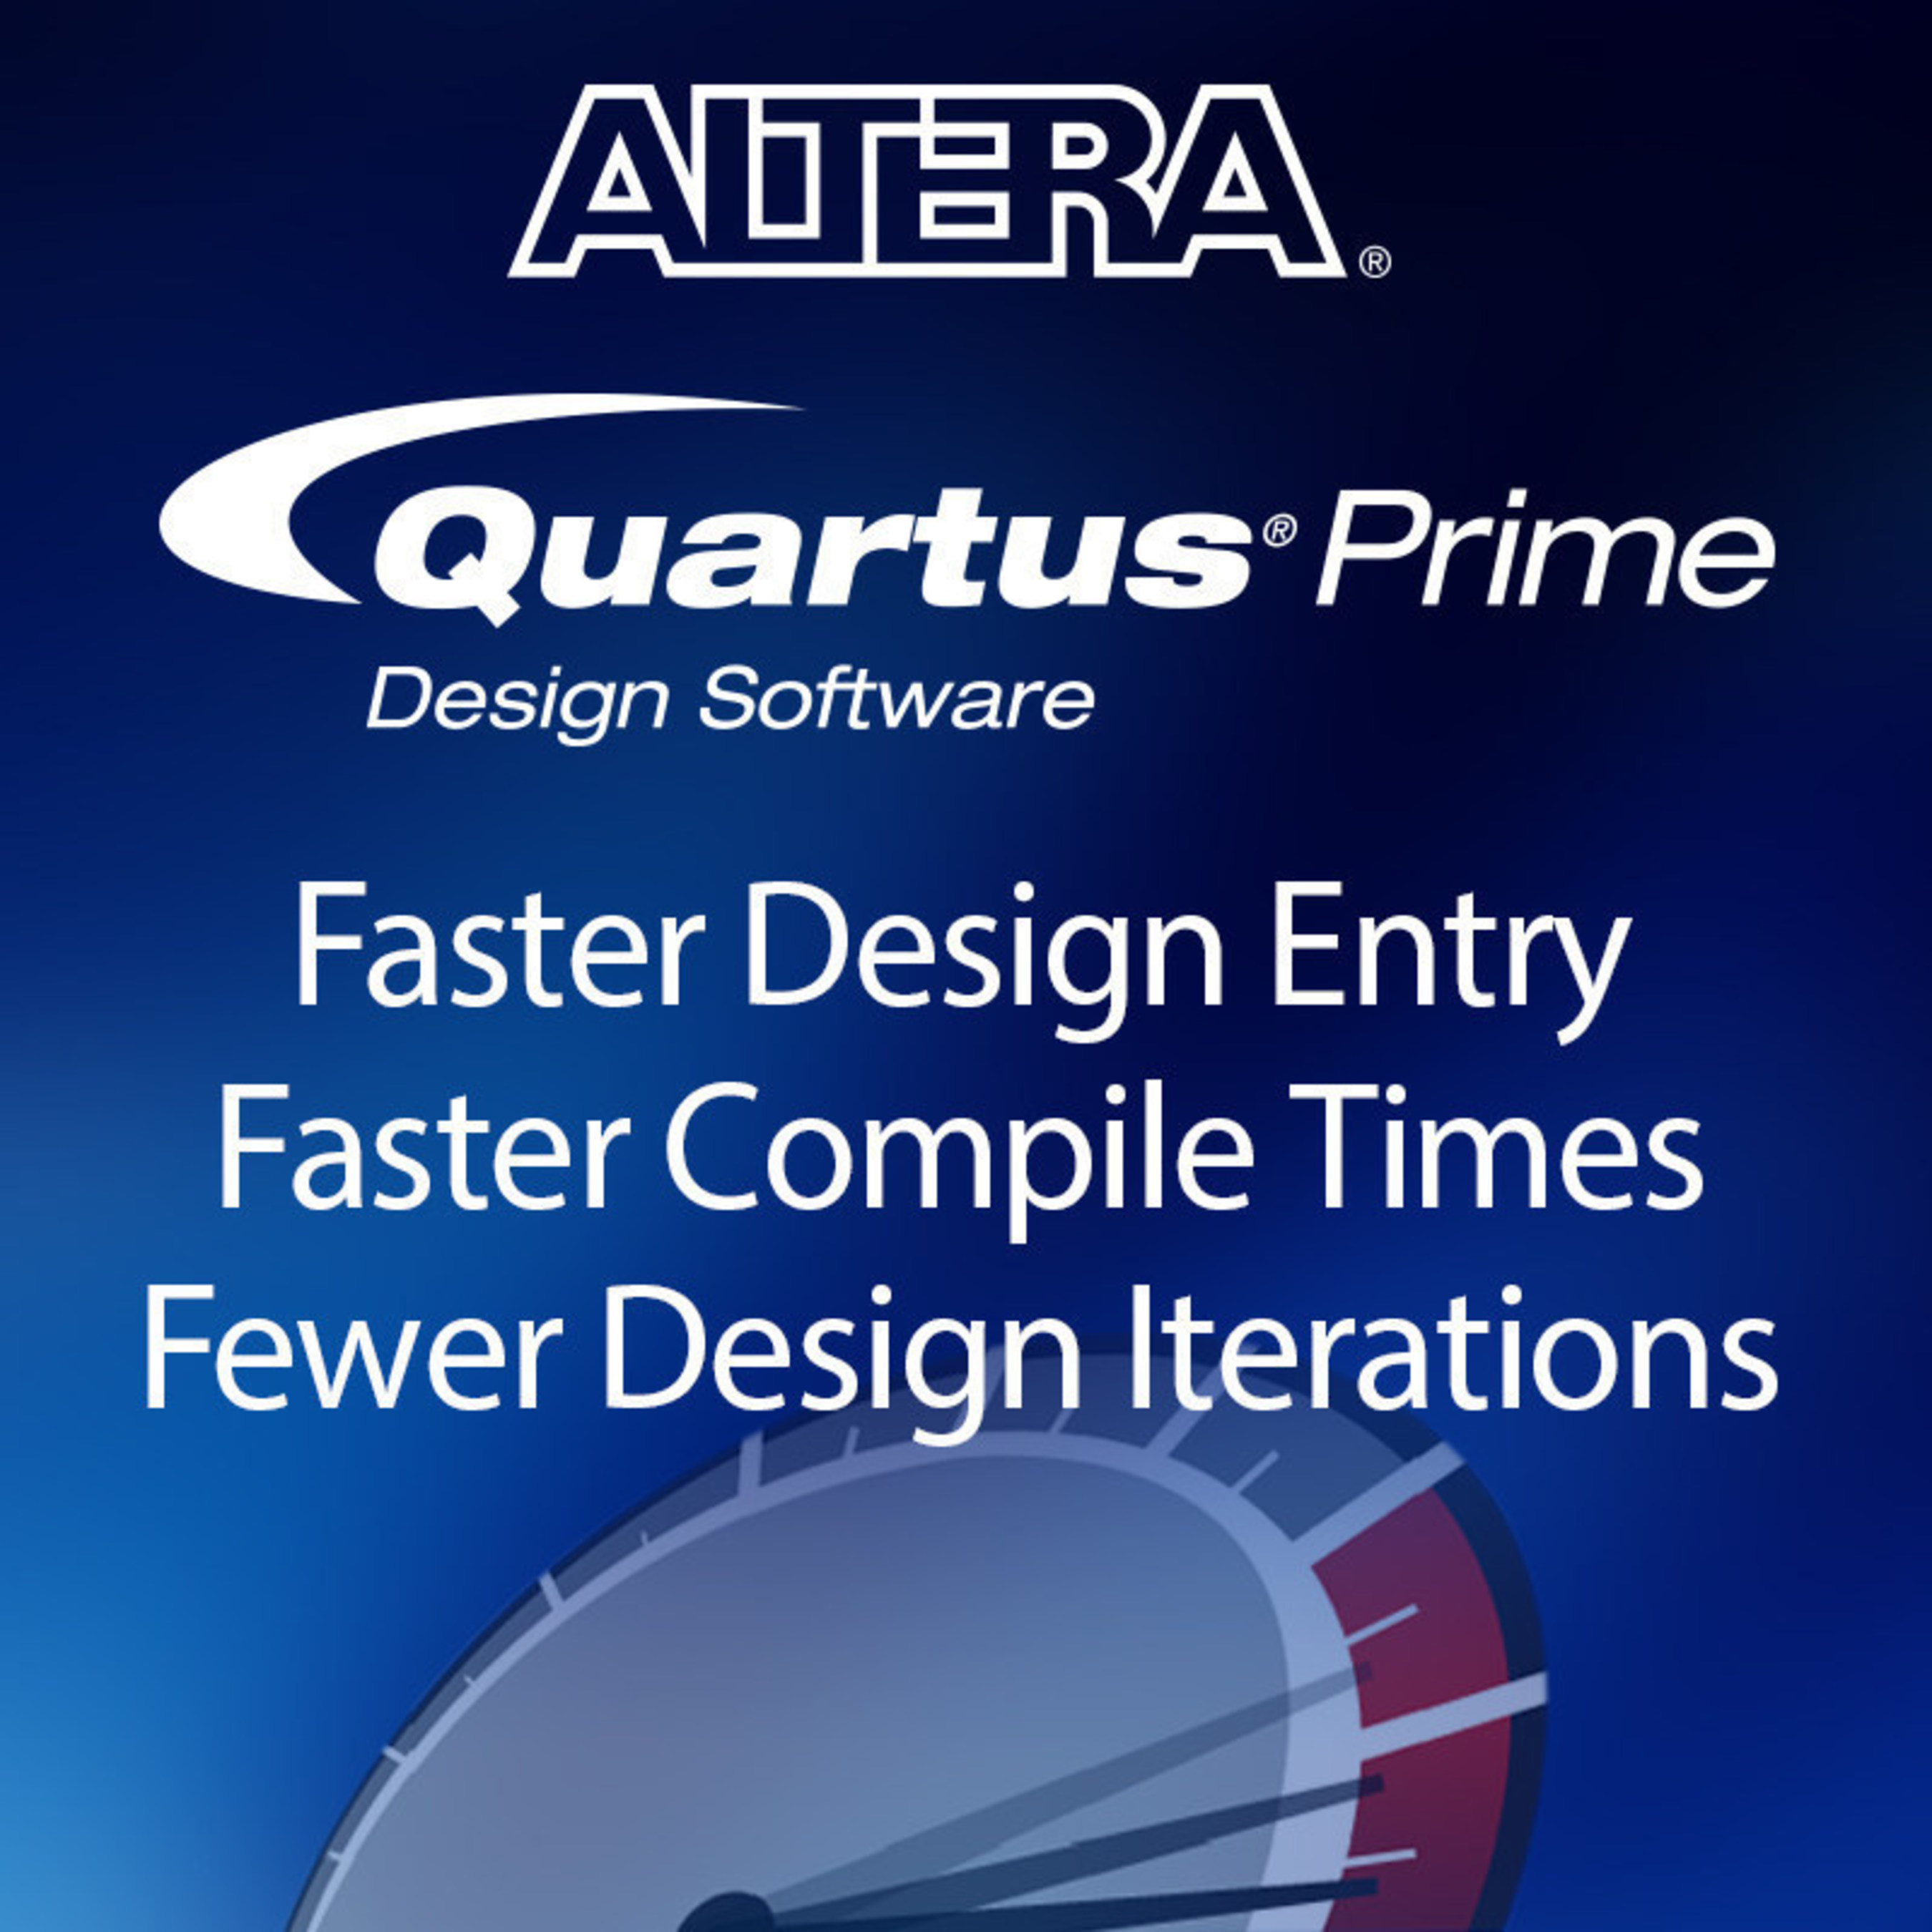 Altera Accelerates High-capacity FPGA Design with Quartus Prime Pro Design Software